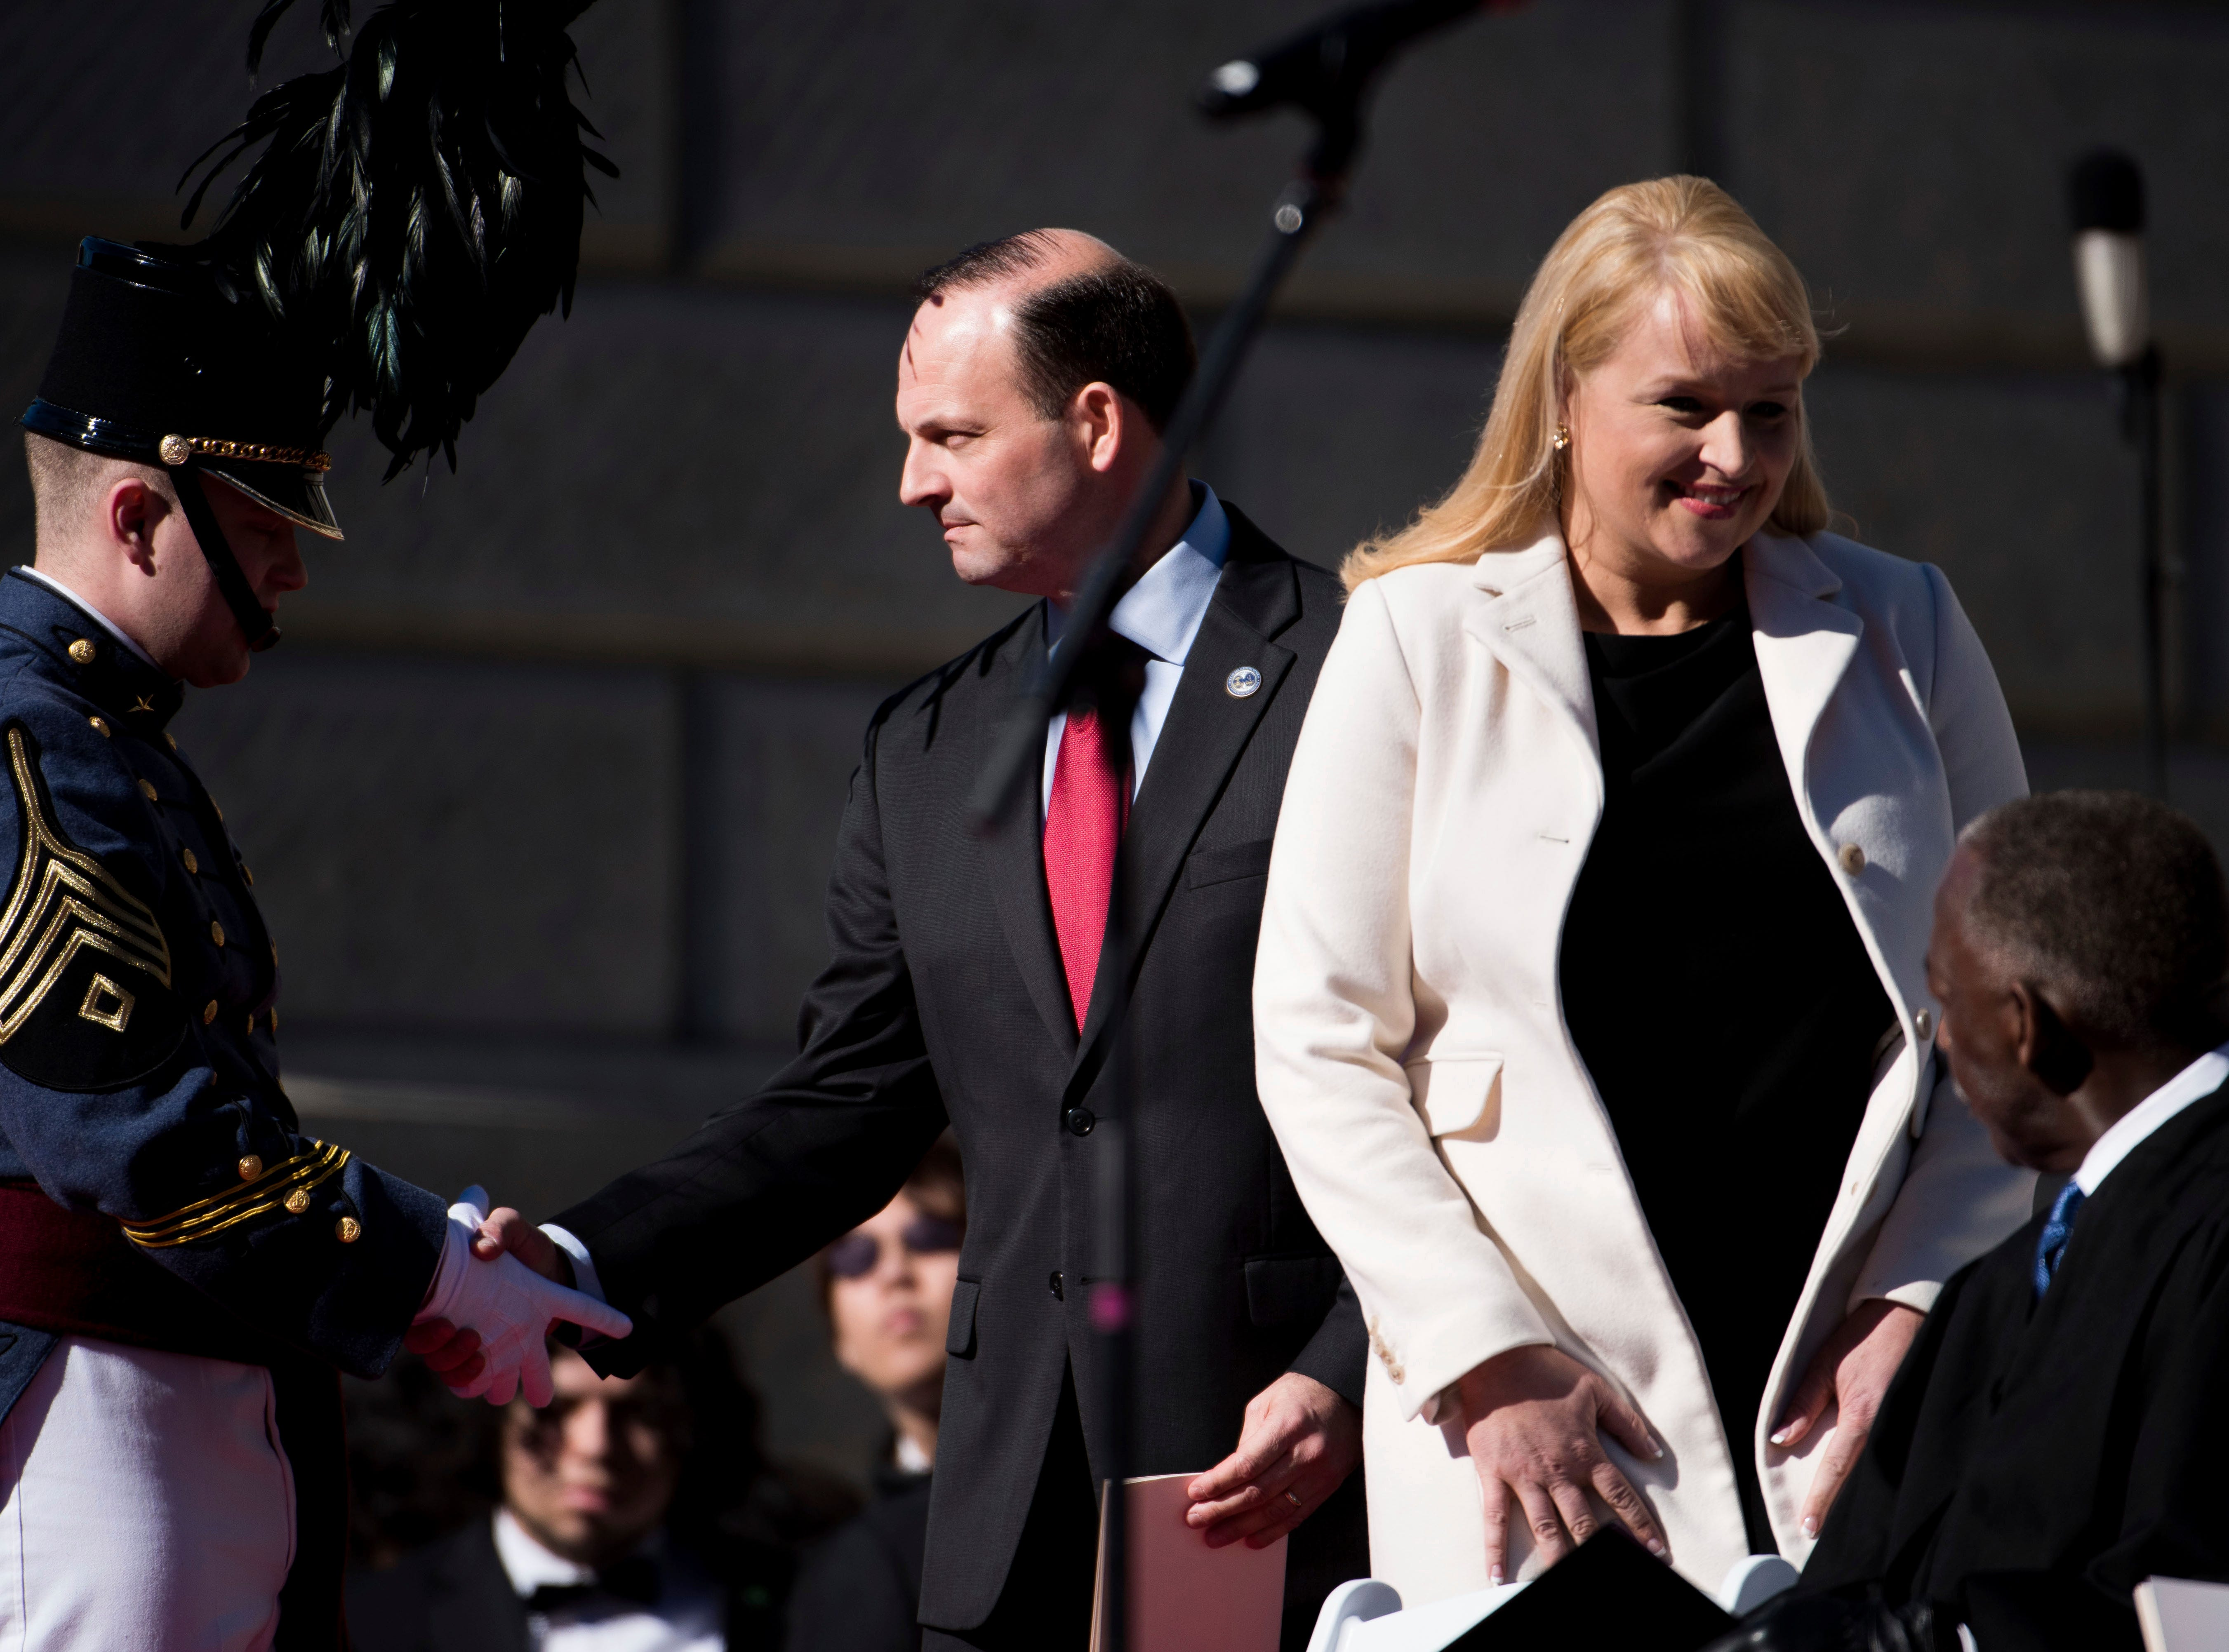 South Carolina Attorney General Alan Wilson, center, shakes the hand of a cadet from The Citadel as his wife, Jennifer Wilson, takes her seat during inauguration ceremonies for Governor Henry McMaster at the South Carolina Statehouse, Wednesday, Jan. 9, 2019, in Columbia, S.C. (AP Photo/Sean Rayford)